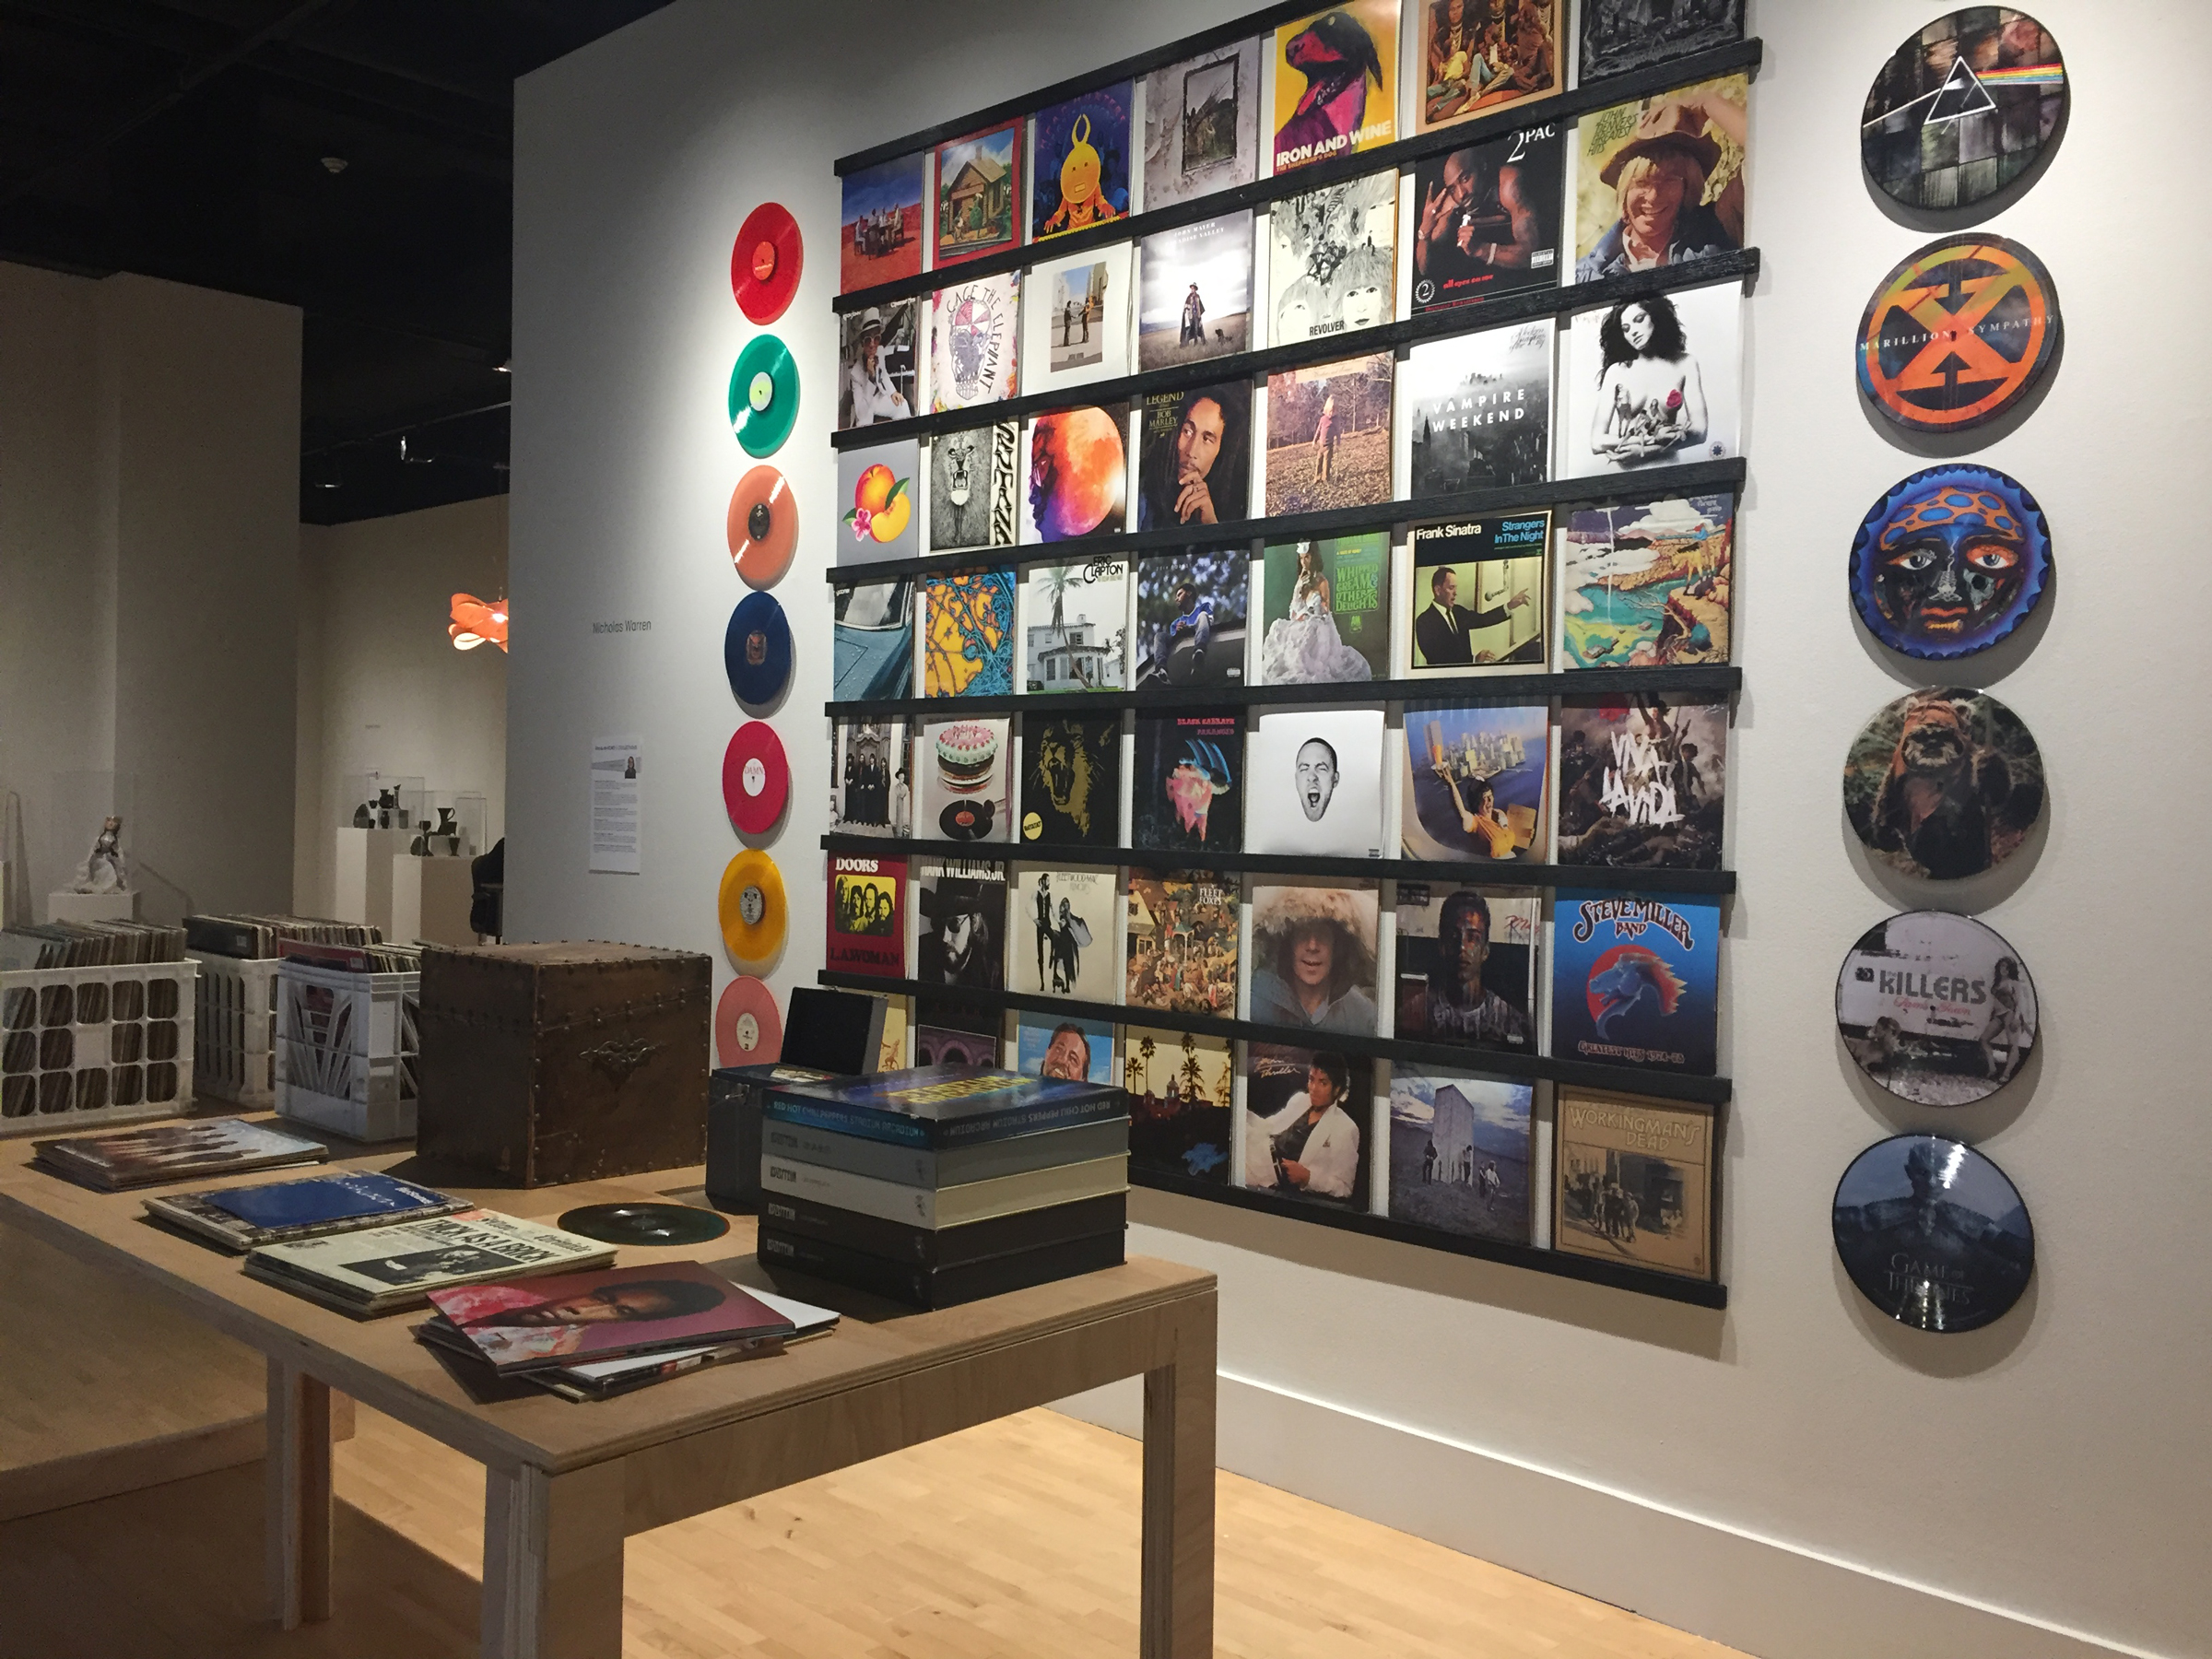 Vinyl collection on display at Kendall College of Art & Design's Fed Galleries.